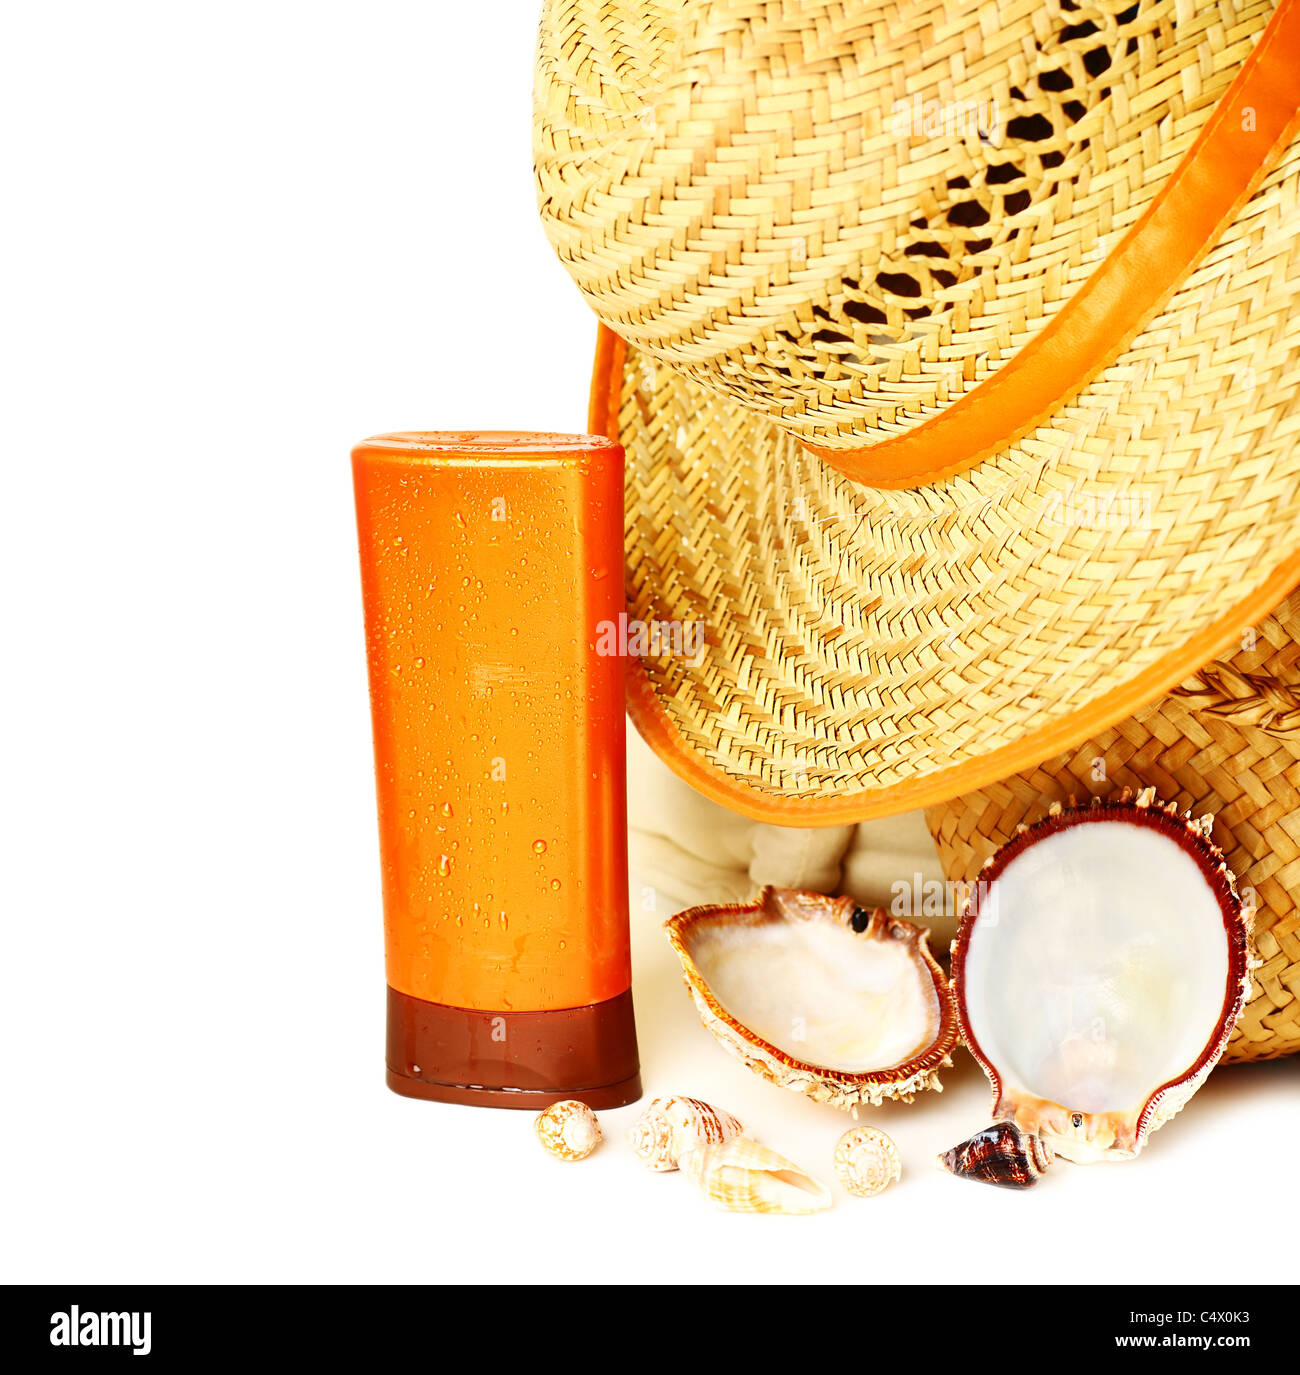 Beach items isolated on white background conceptual image of summertime vacation - Stock Image